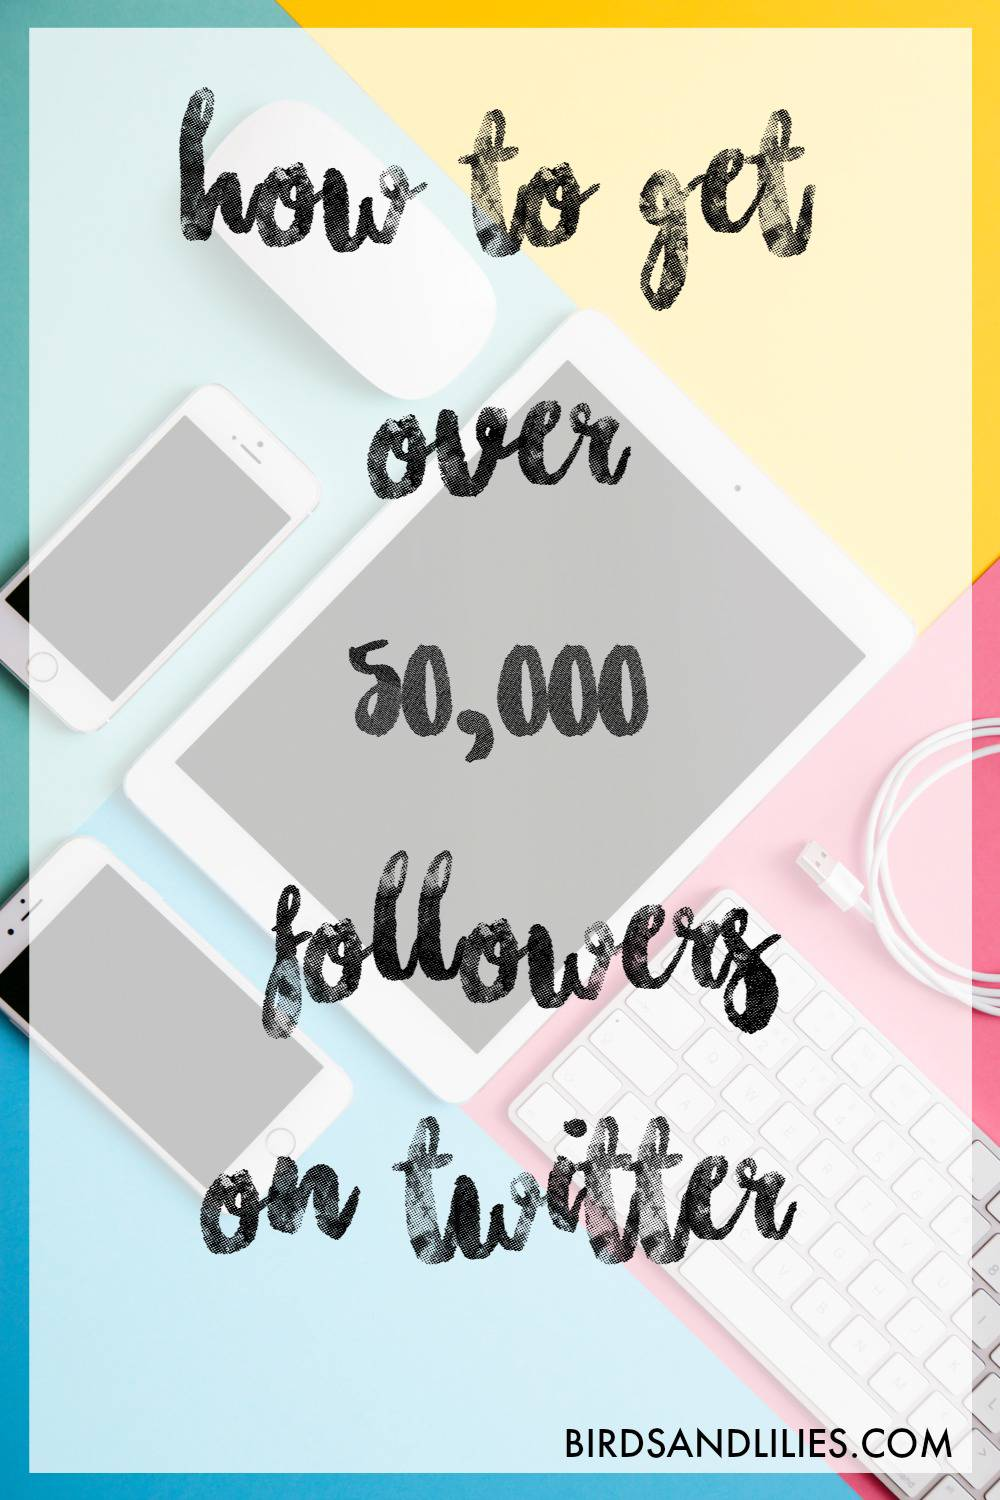 how to get over 50,000 followers on twitter